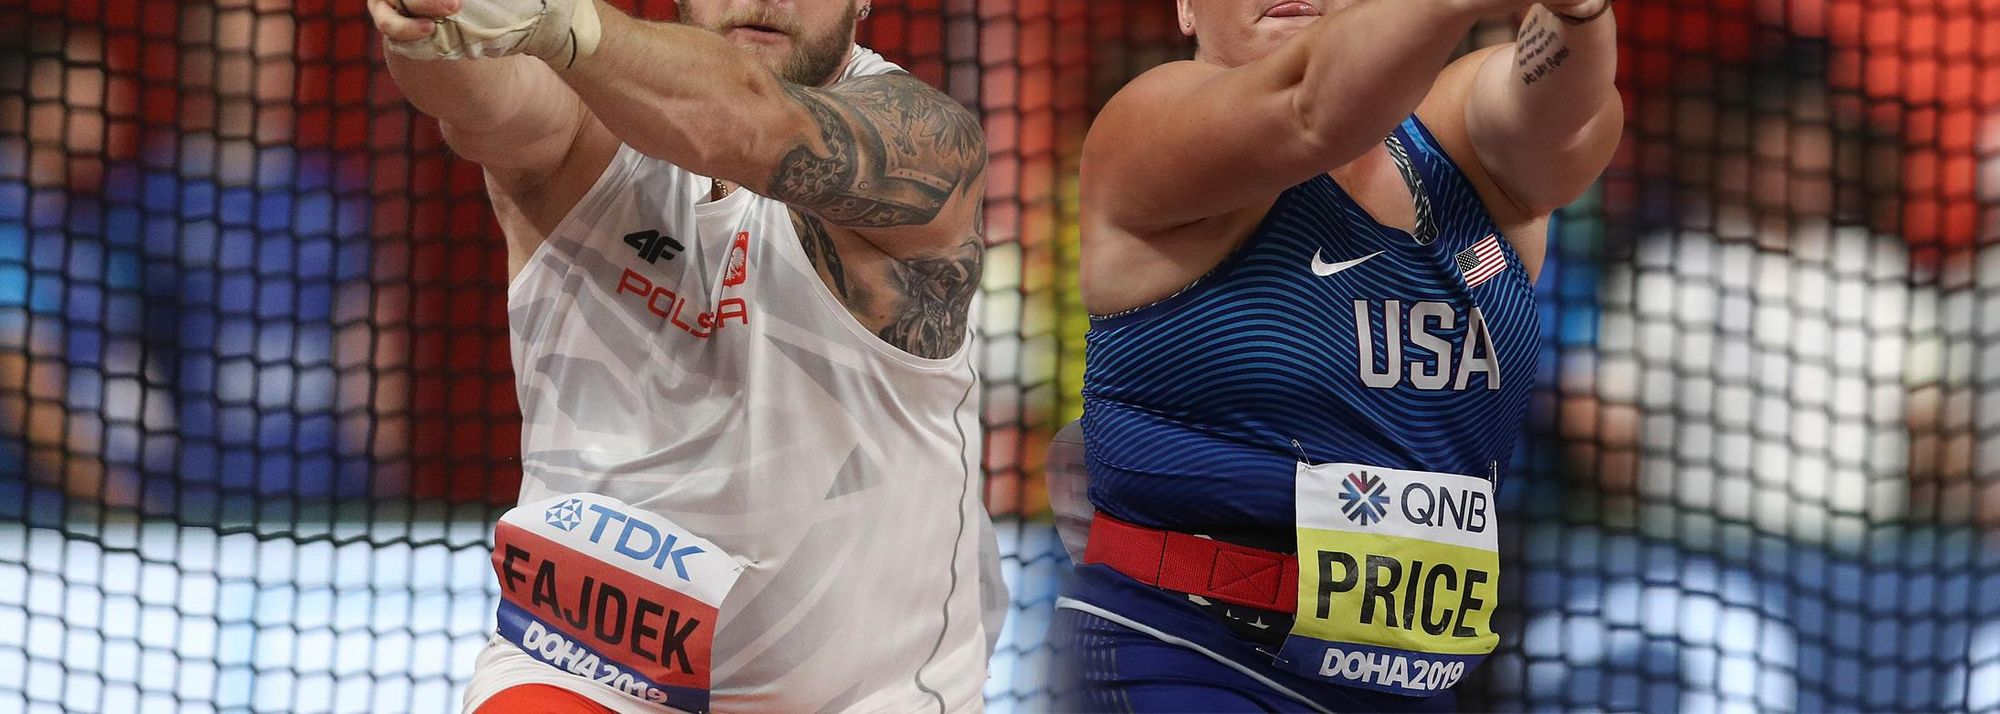 Recently crowned world champions Pawel Fajdek of Poland and DeAnna Price of the USA topped the end-of-year standings for the 2019IAAF Hammer Throw Challenge. Fajdek won the challenge for the fifth time, adding to victories in 2013, 2015, 2016 and 2017. For Price, it was her first finish atop the standings.